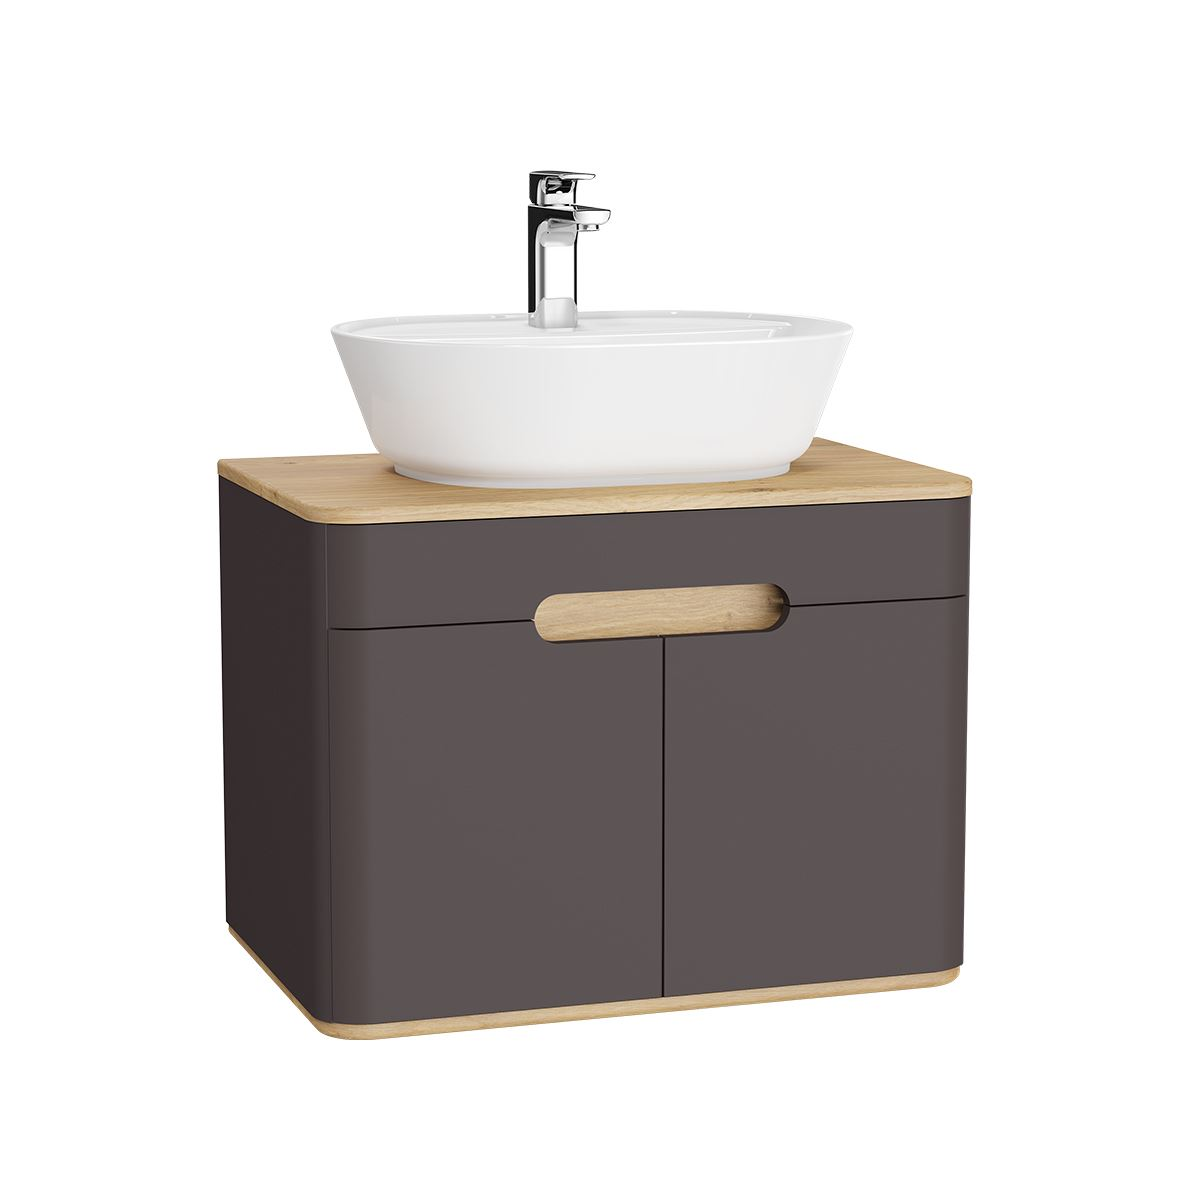 Vitra Sento 700mm Wall Hung Vanity Unit With Doors In Matte Anthracite